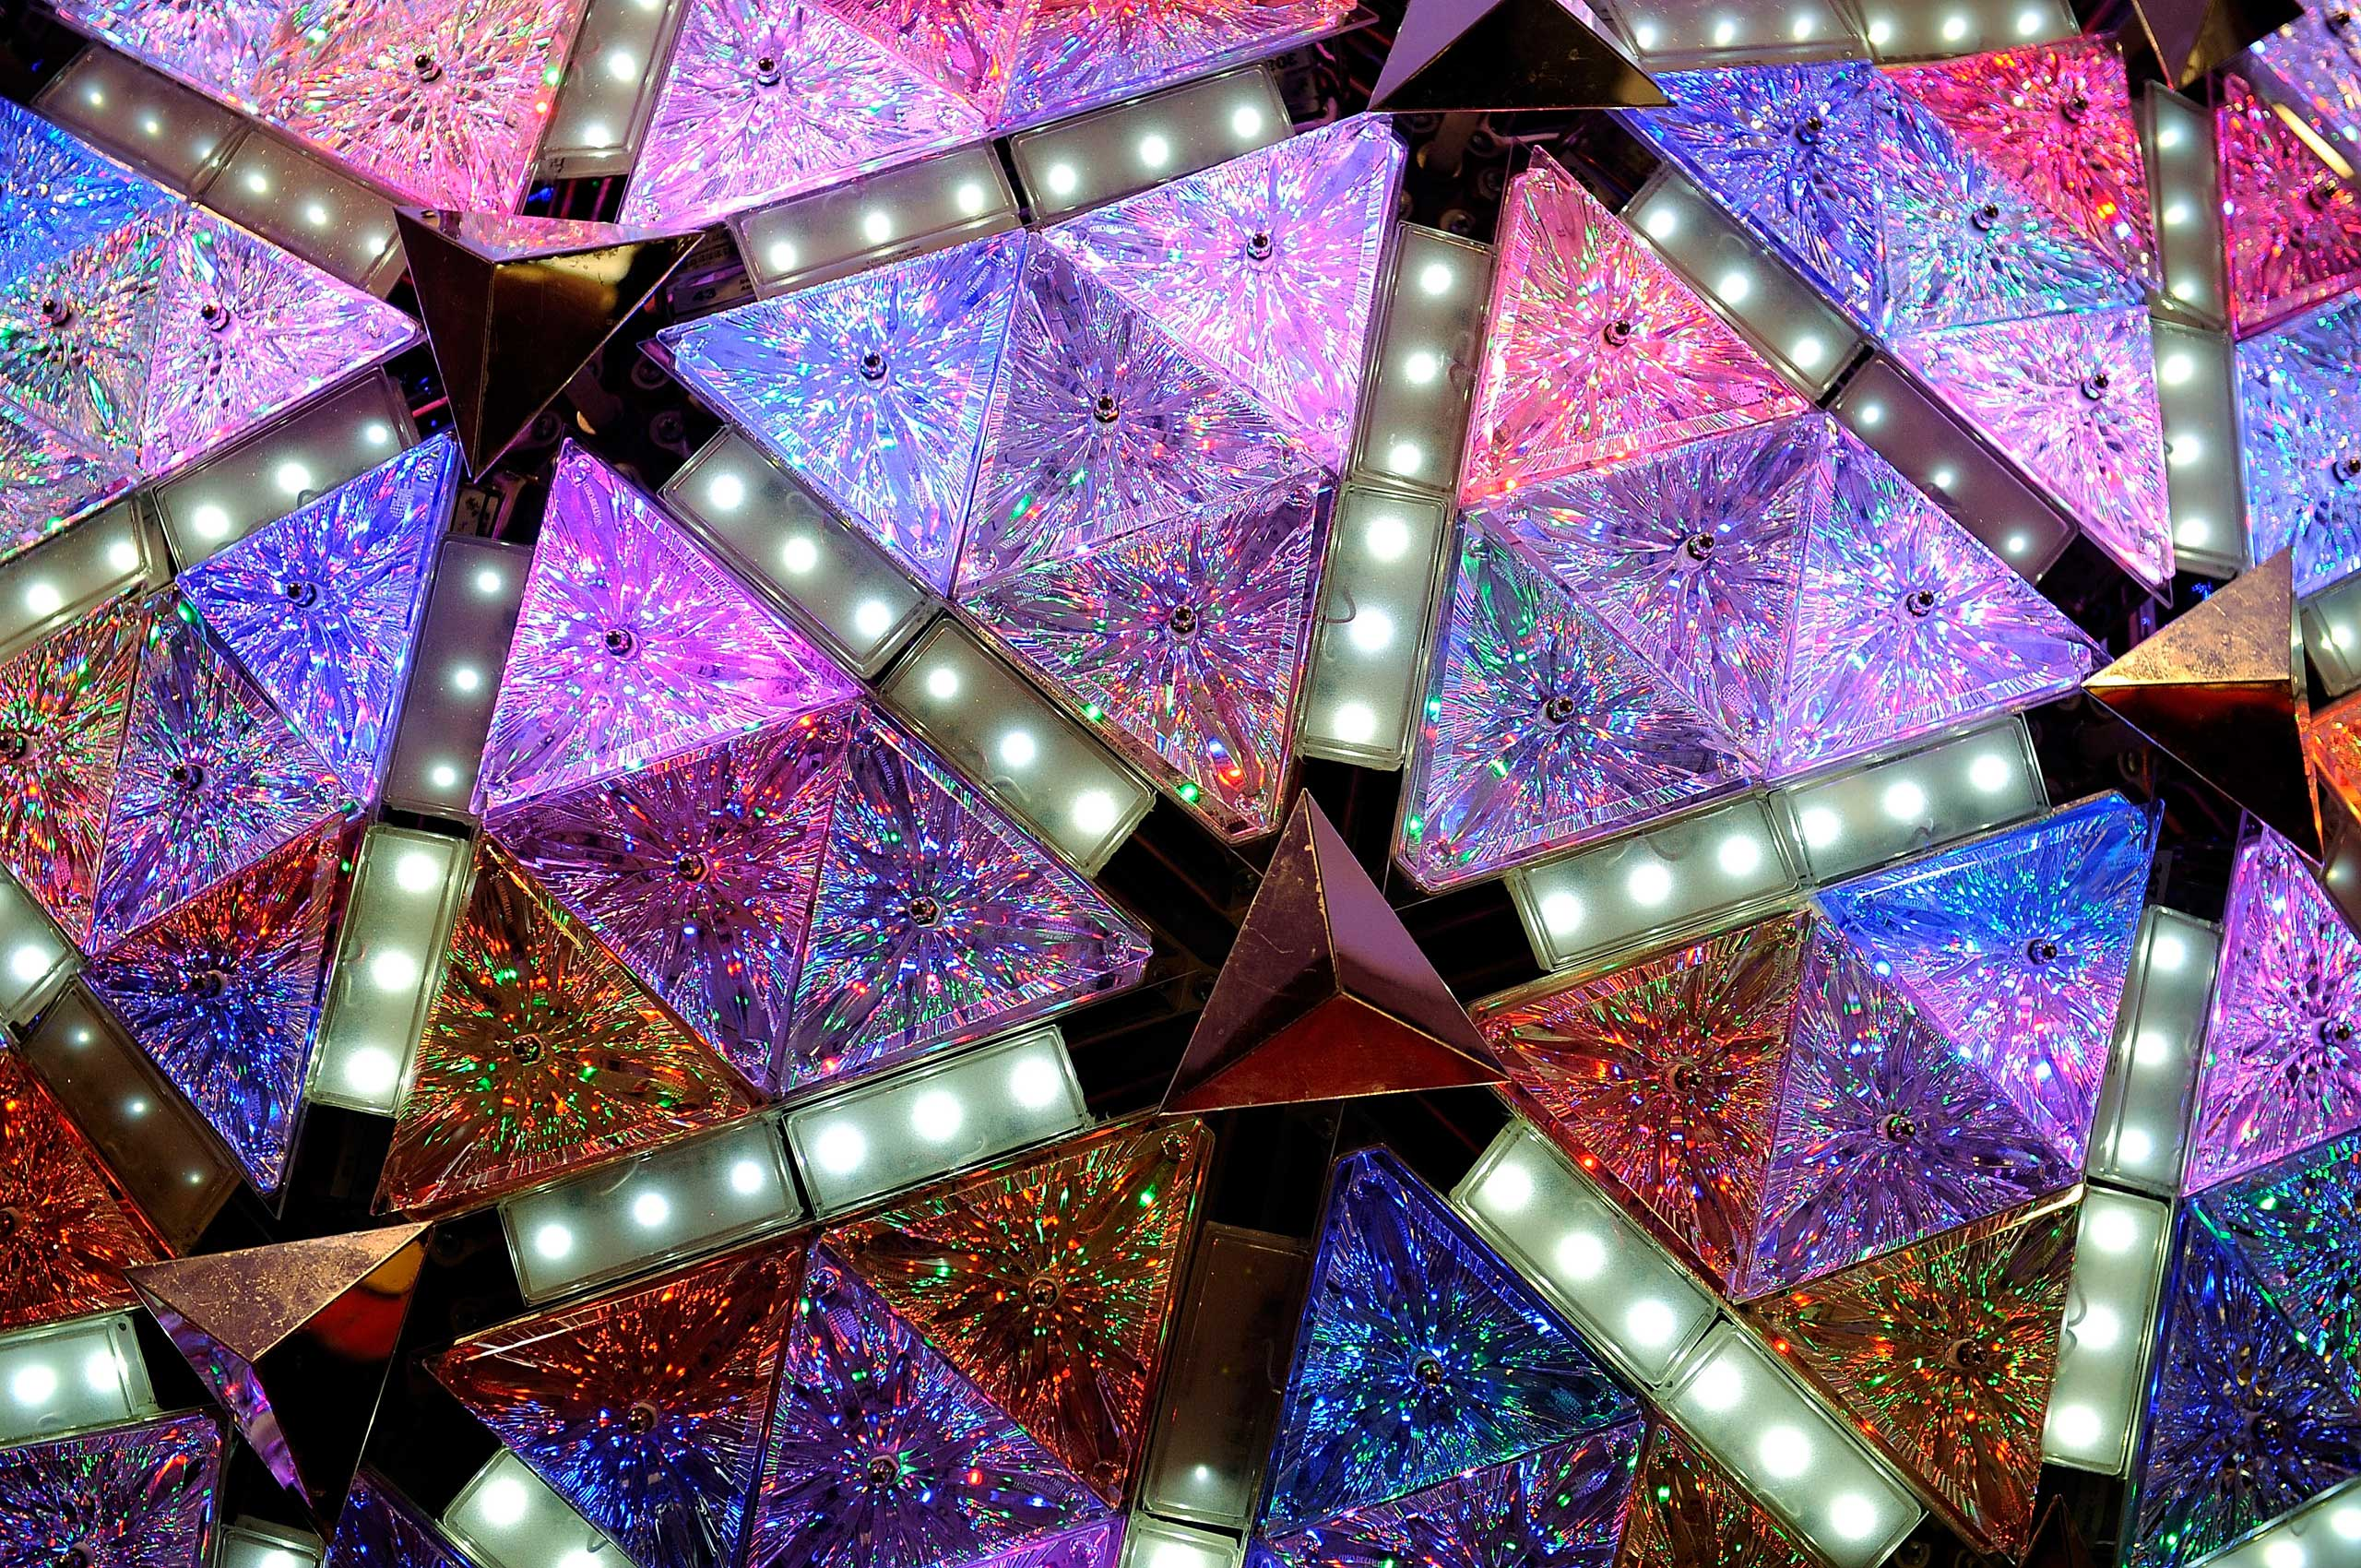 The New Year's Eve Ball is displayed at the Macy's Store in Herald Square before moving to Times Square for New Years celebrations, in New York City on Nov. 5, 2008.